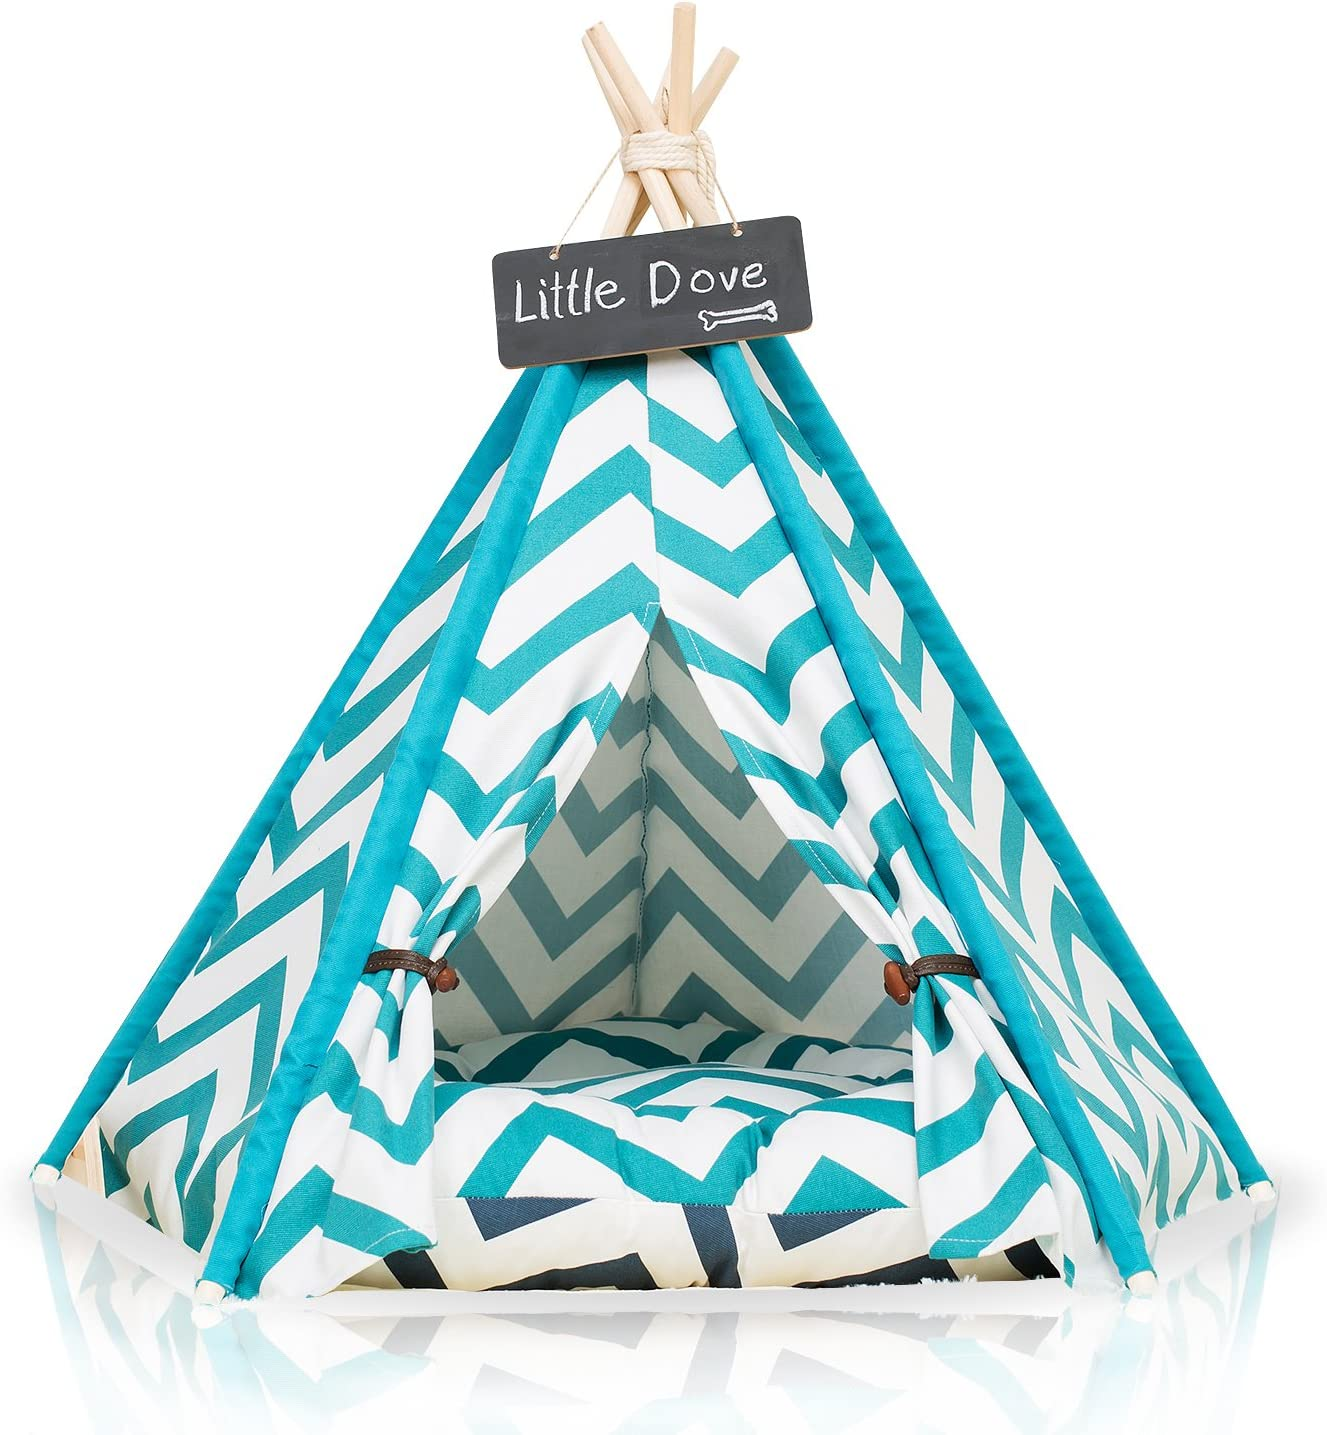 little dove Pet Teepee Dog Puppy Cat Bed – Portable Pet Tents Houses for Dog Puppy Cat Blue Strip Style with or Without Optional Cushion